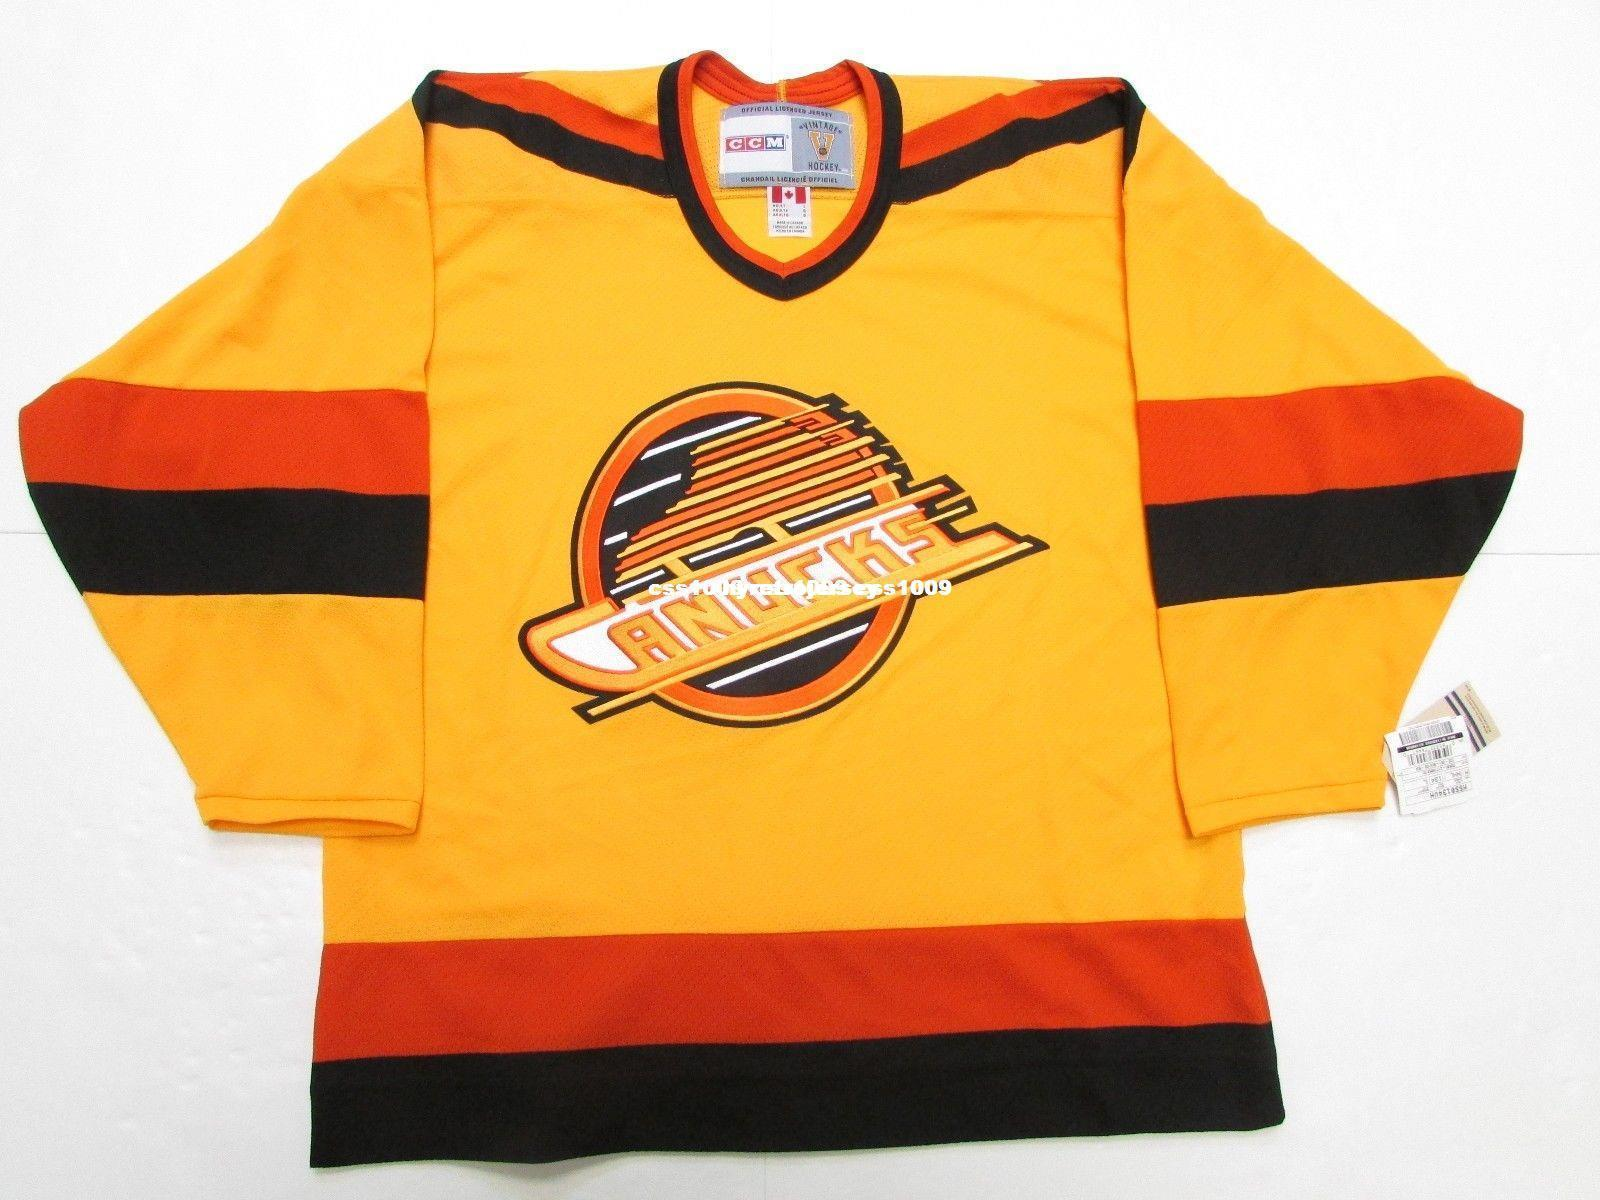 86bb3a880 2019 Cheap Custom VANCOUVER CANUCKS VINTAGE CCM SUNFLOWER HOCKEY JERSEY  Stitch Add Any Number Any Name Mens Hockey Jersey GOALIE CUT 5XL From  Hyretrojersey